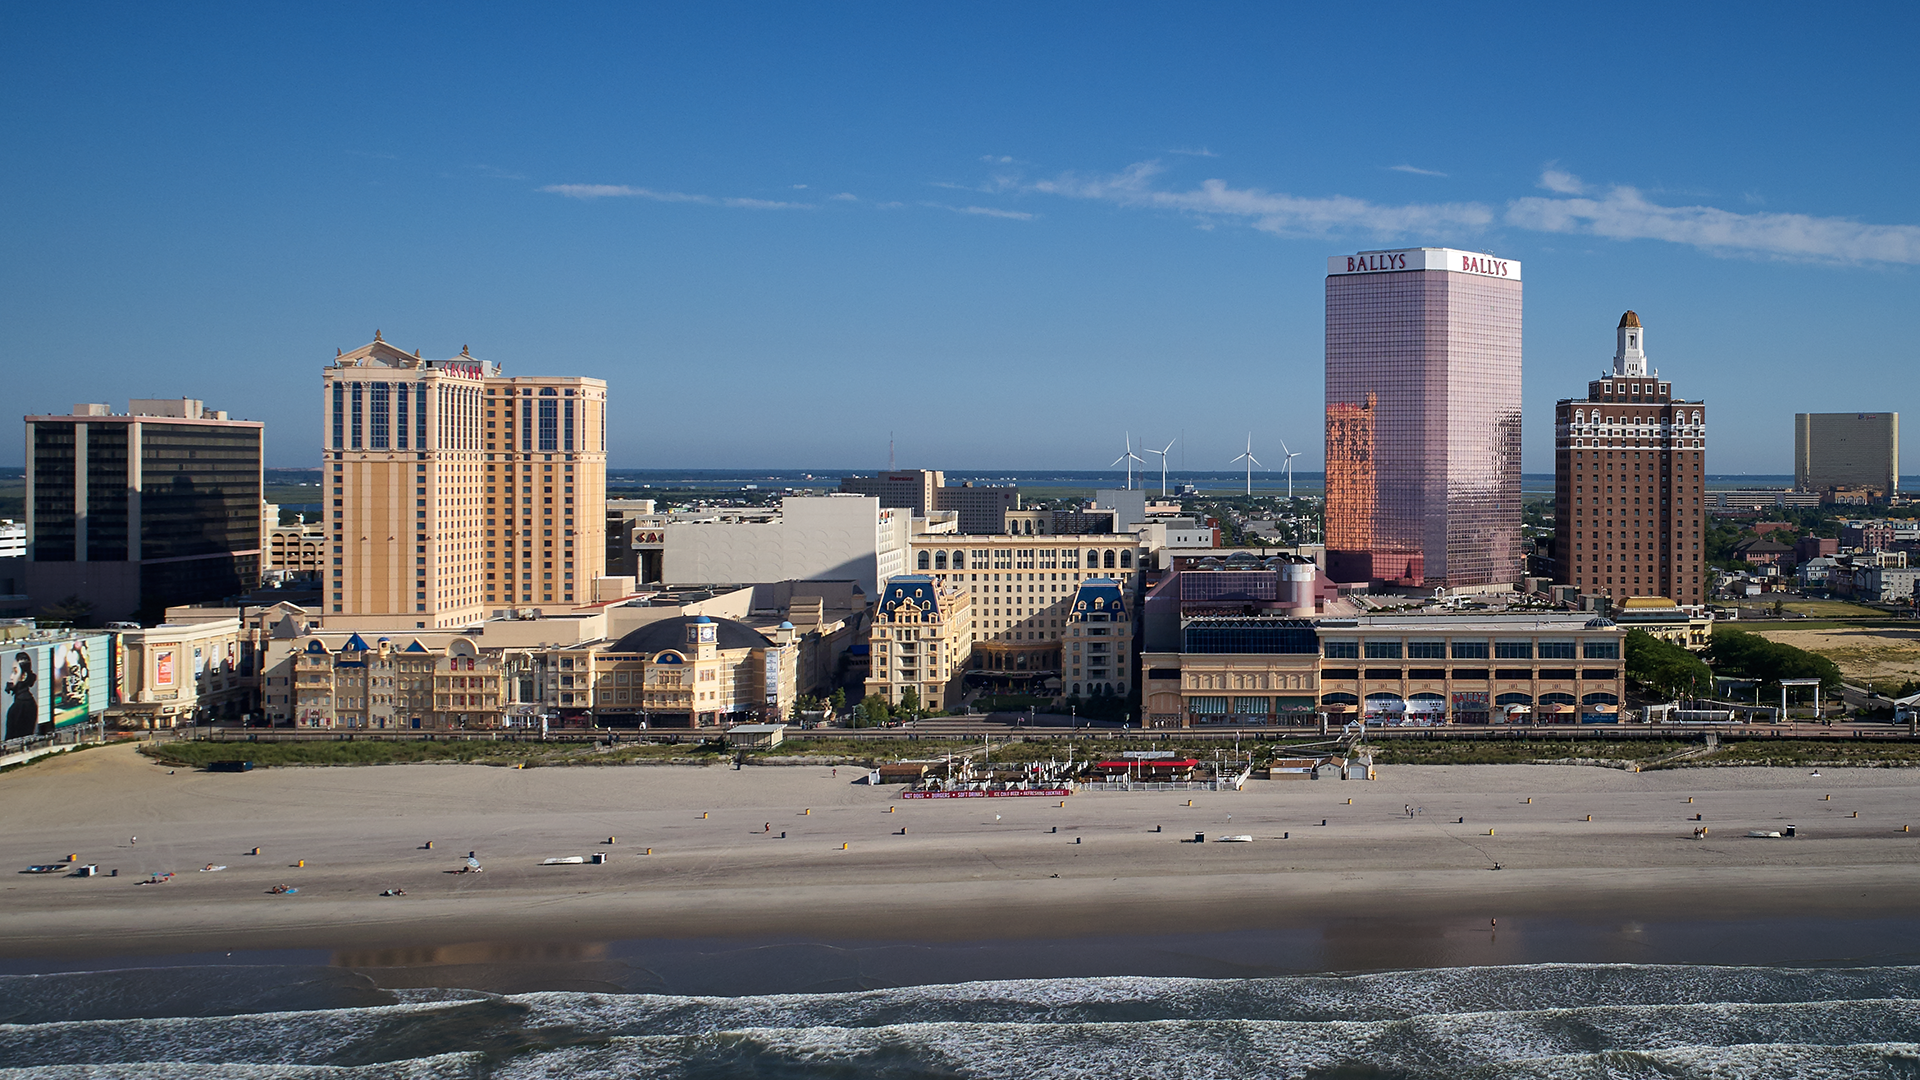 Atlantic City Caesars